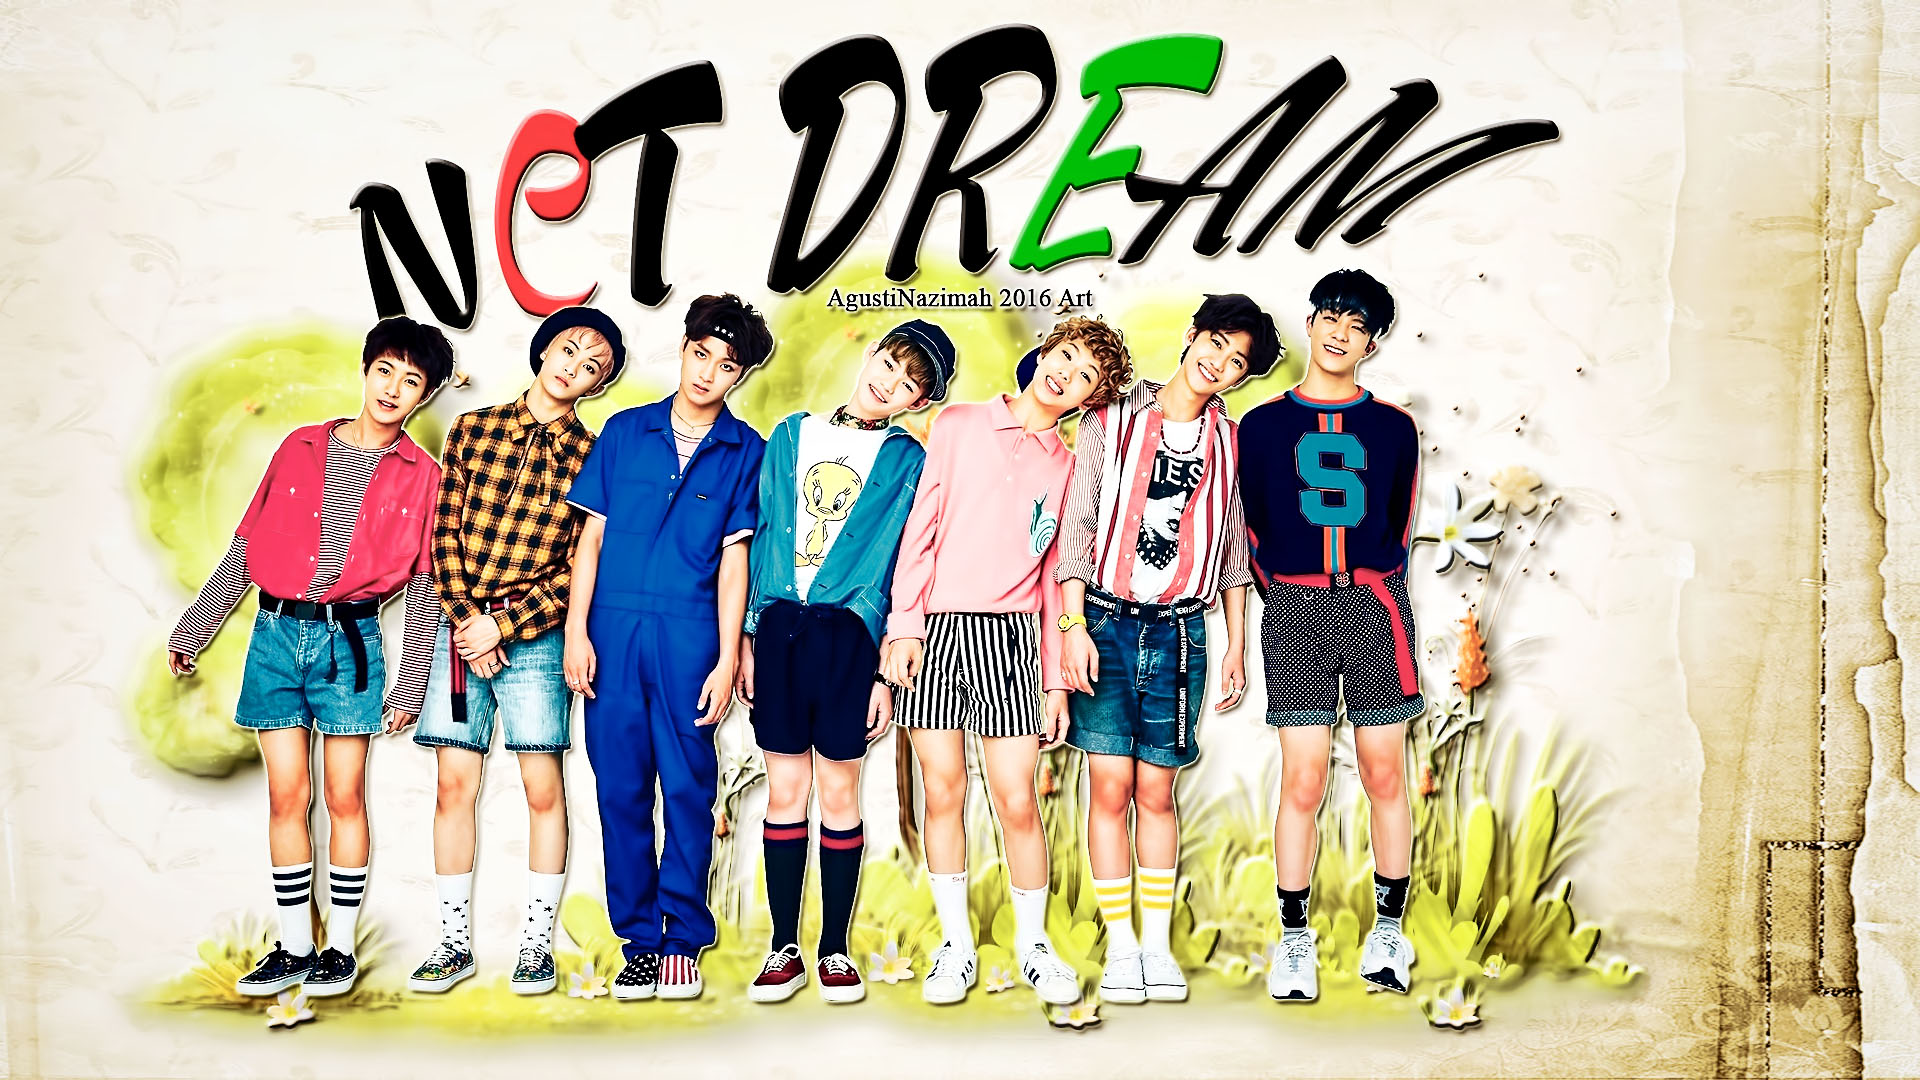 [Artwork] NCT Dream For Chewing Gum 1920x1080